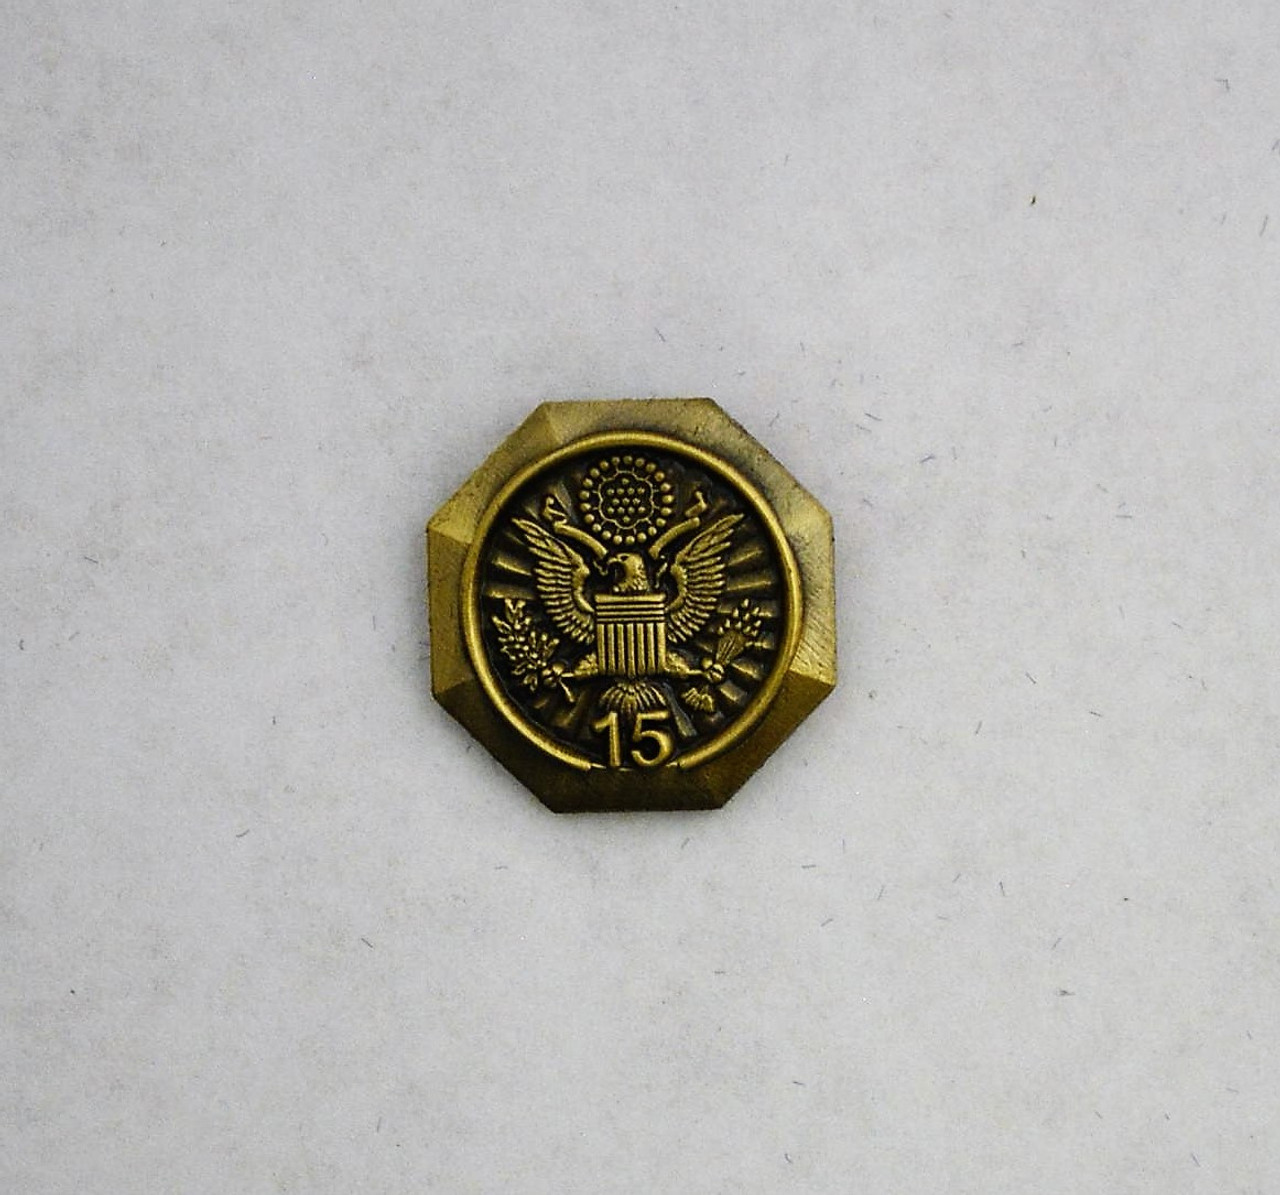 Forest Service Length of Service Pin with Eagle Crest (15 years)